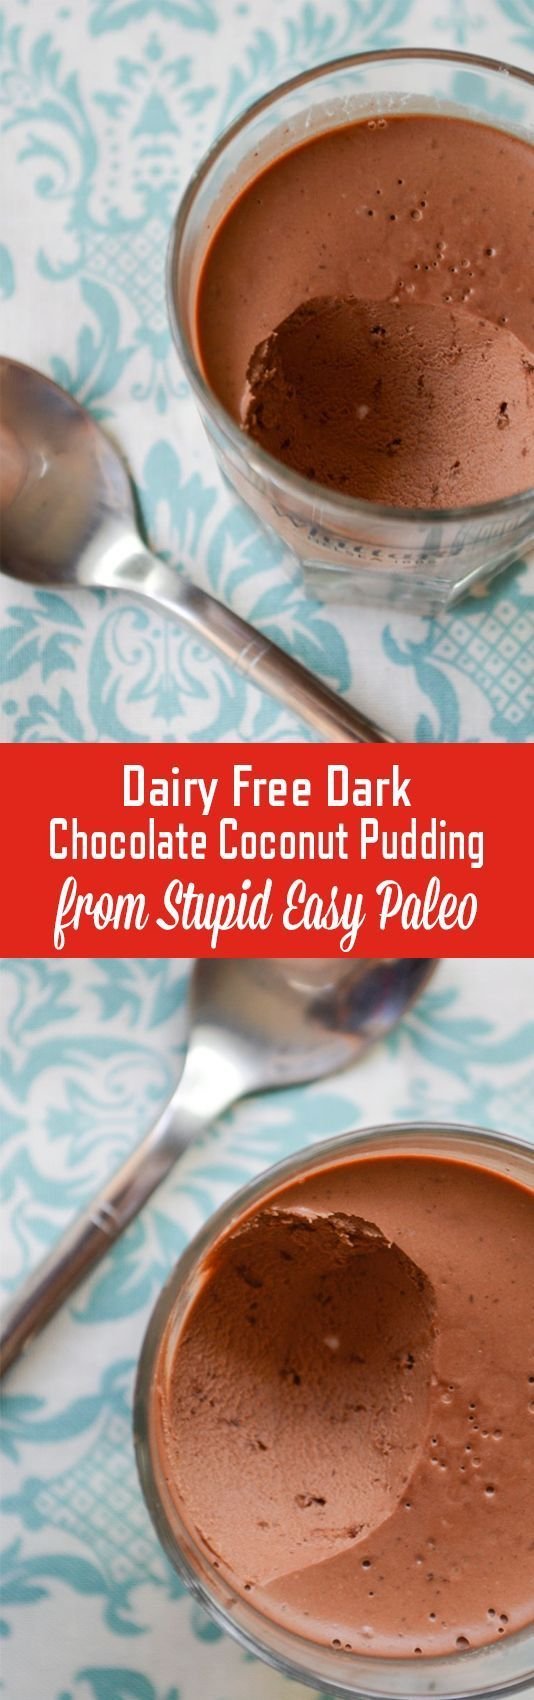 Dairy-Free Dark Chocolate Coconut Pudding is rich, chocolatey, and so simple to make. It's paleo friendly and boosted with gut soothing gelatin. Make these as a decadent dessert that's healthy at the same time.   StupidEasyPaleo.com